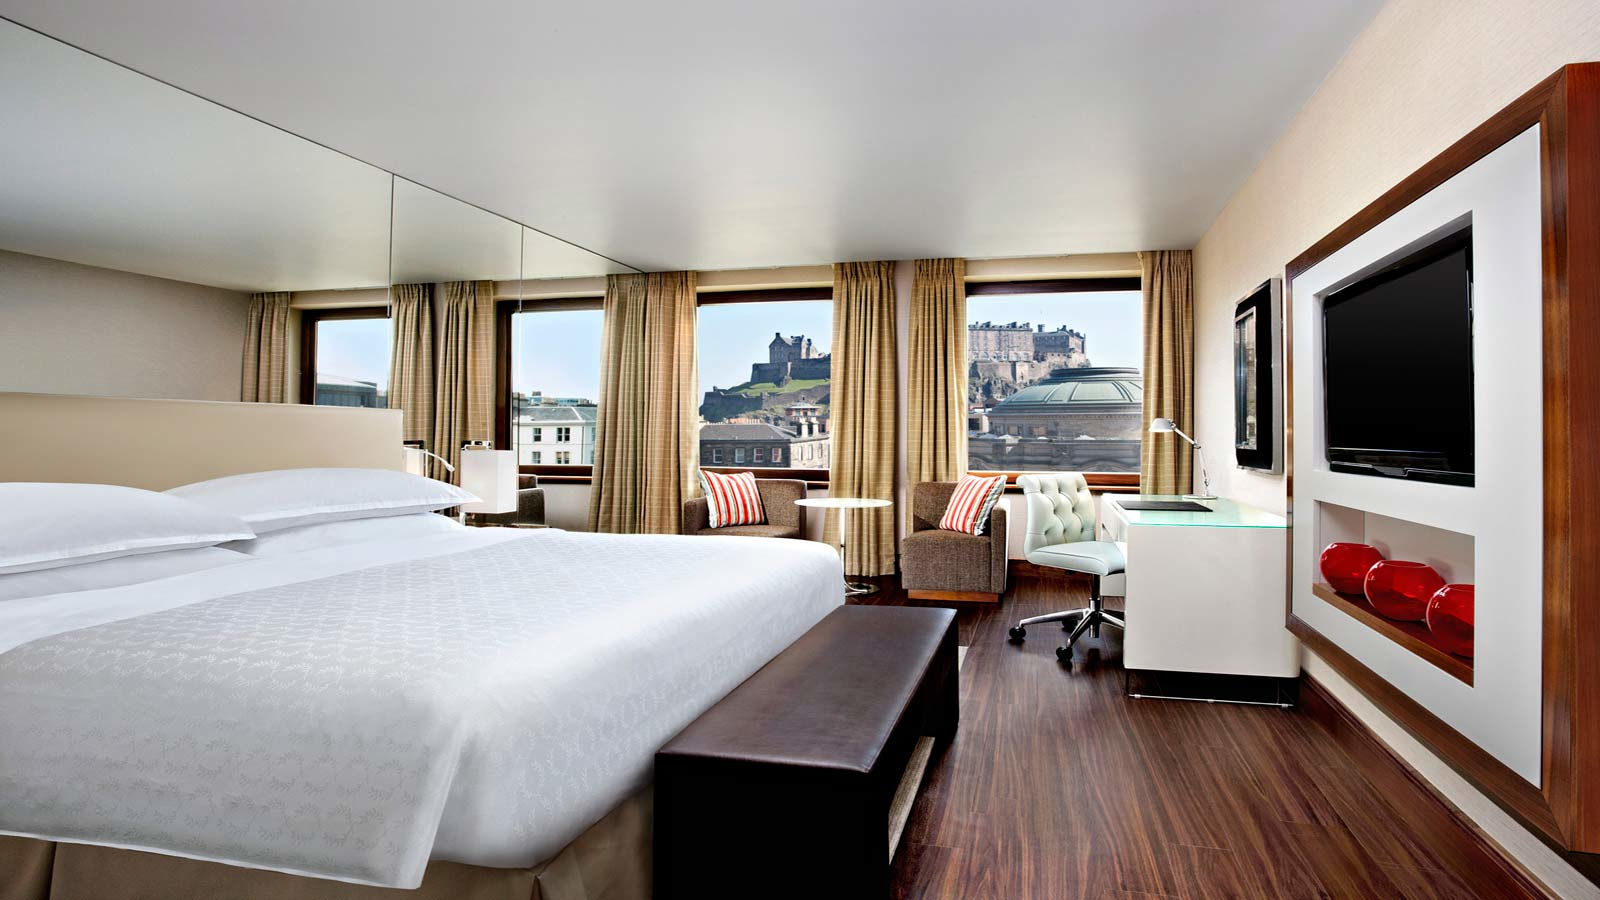 Edinburgh Castle Hotel - Room with a Stunning View